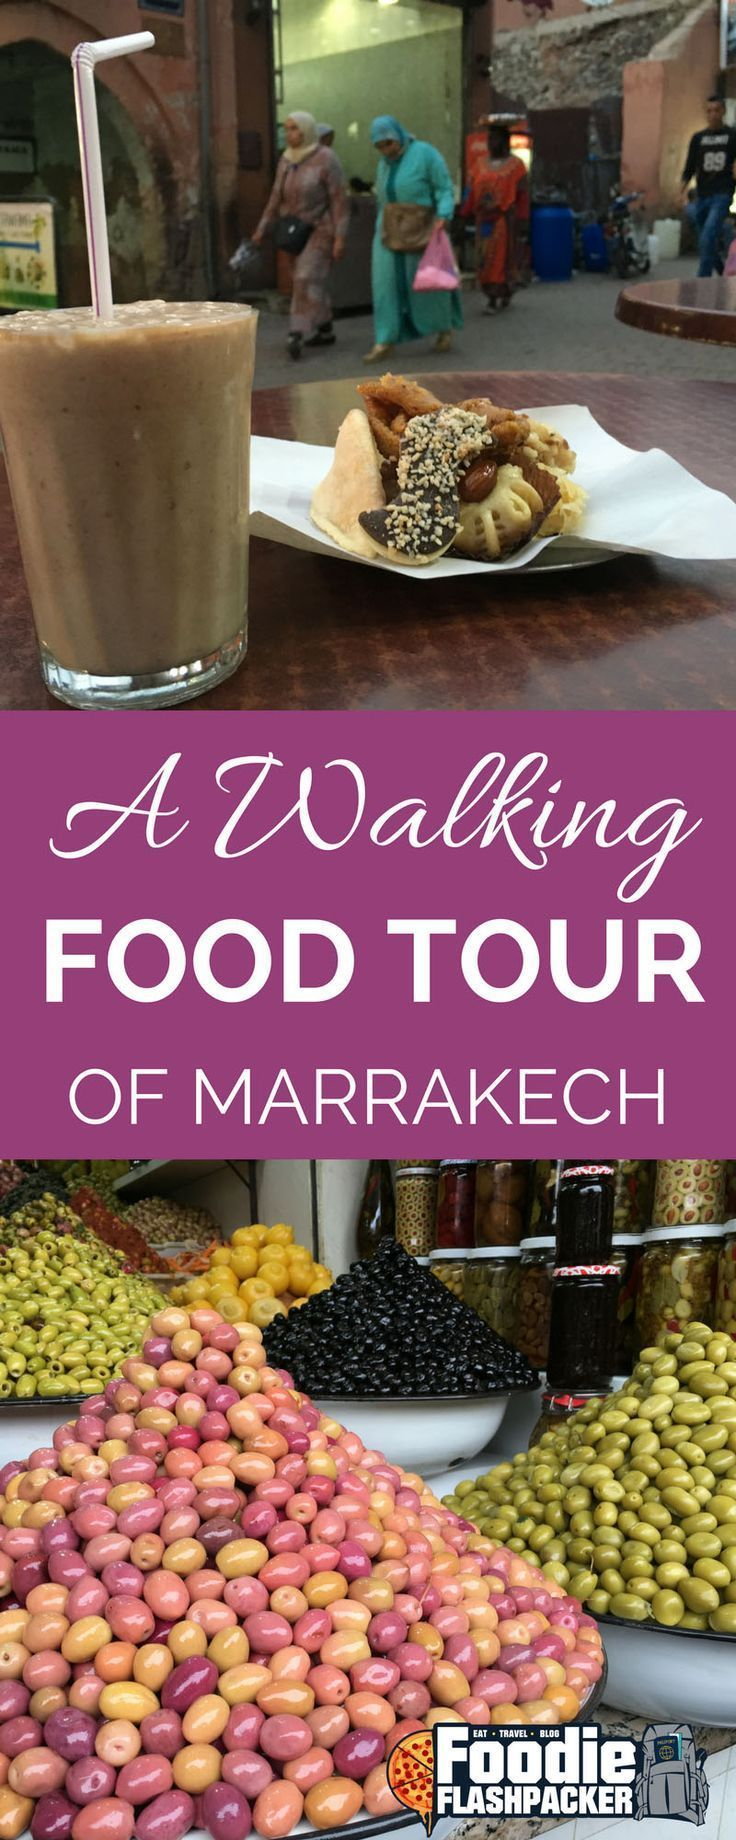 The highlight of my time spent in Marrakech was definitely the walking food tour I took with Marrakech Food Tours. My favorite thing about the tour is that we visited places I know that I would not have discovered on my own. Places that maybe only locals